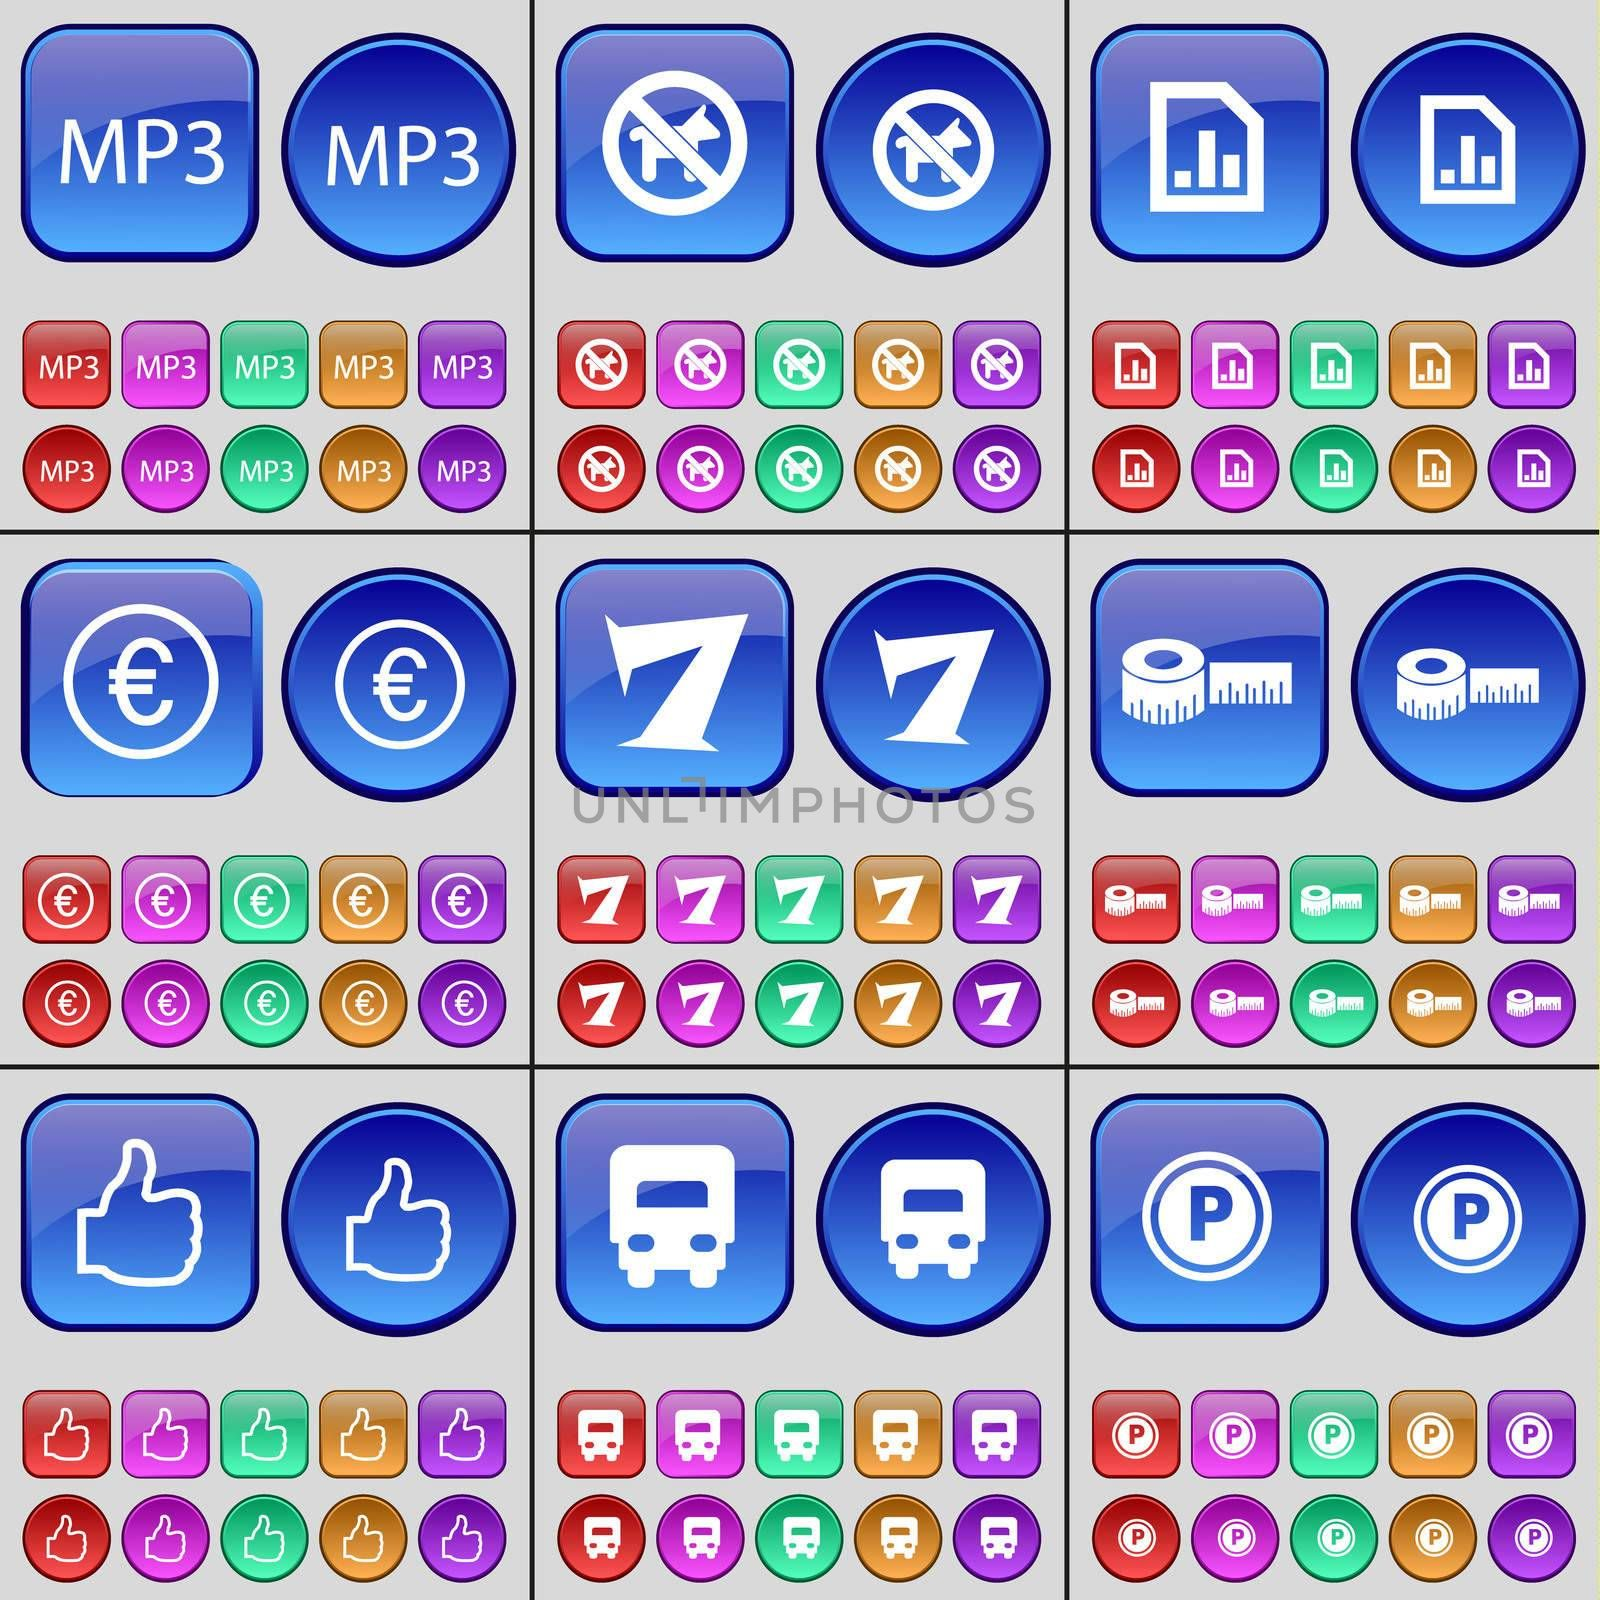 MP3, No pets allowed, Diagram, Euro, Seven, Tape measure, Like, Truck, Parking. A large set of multi-colored buttons. illustration